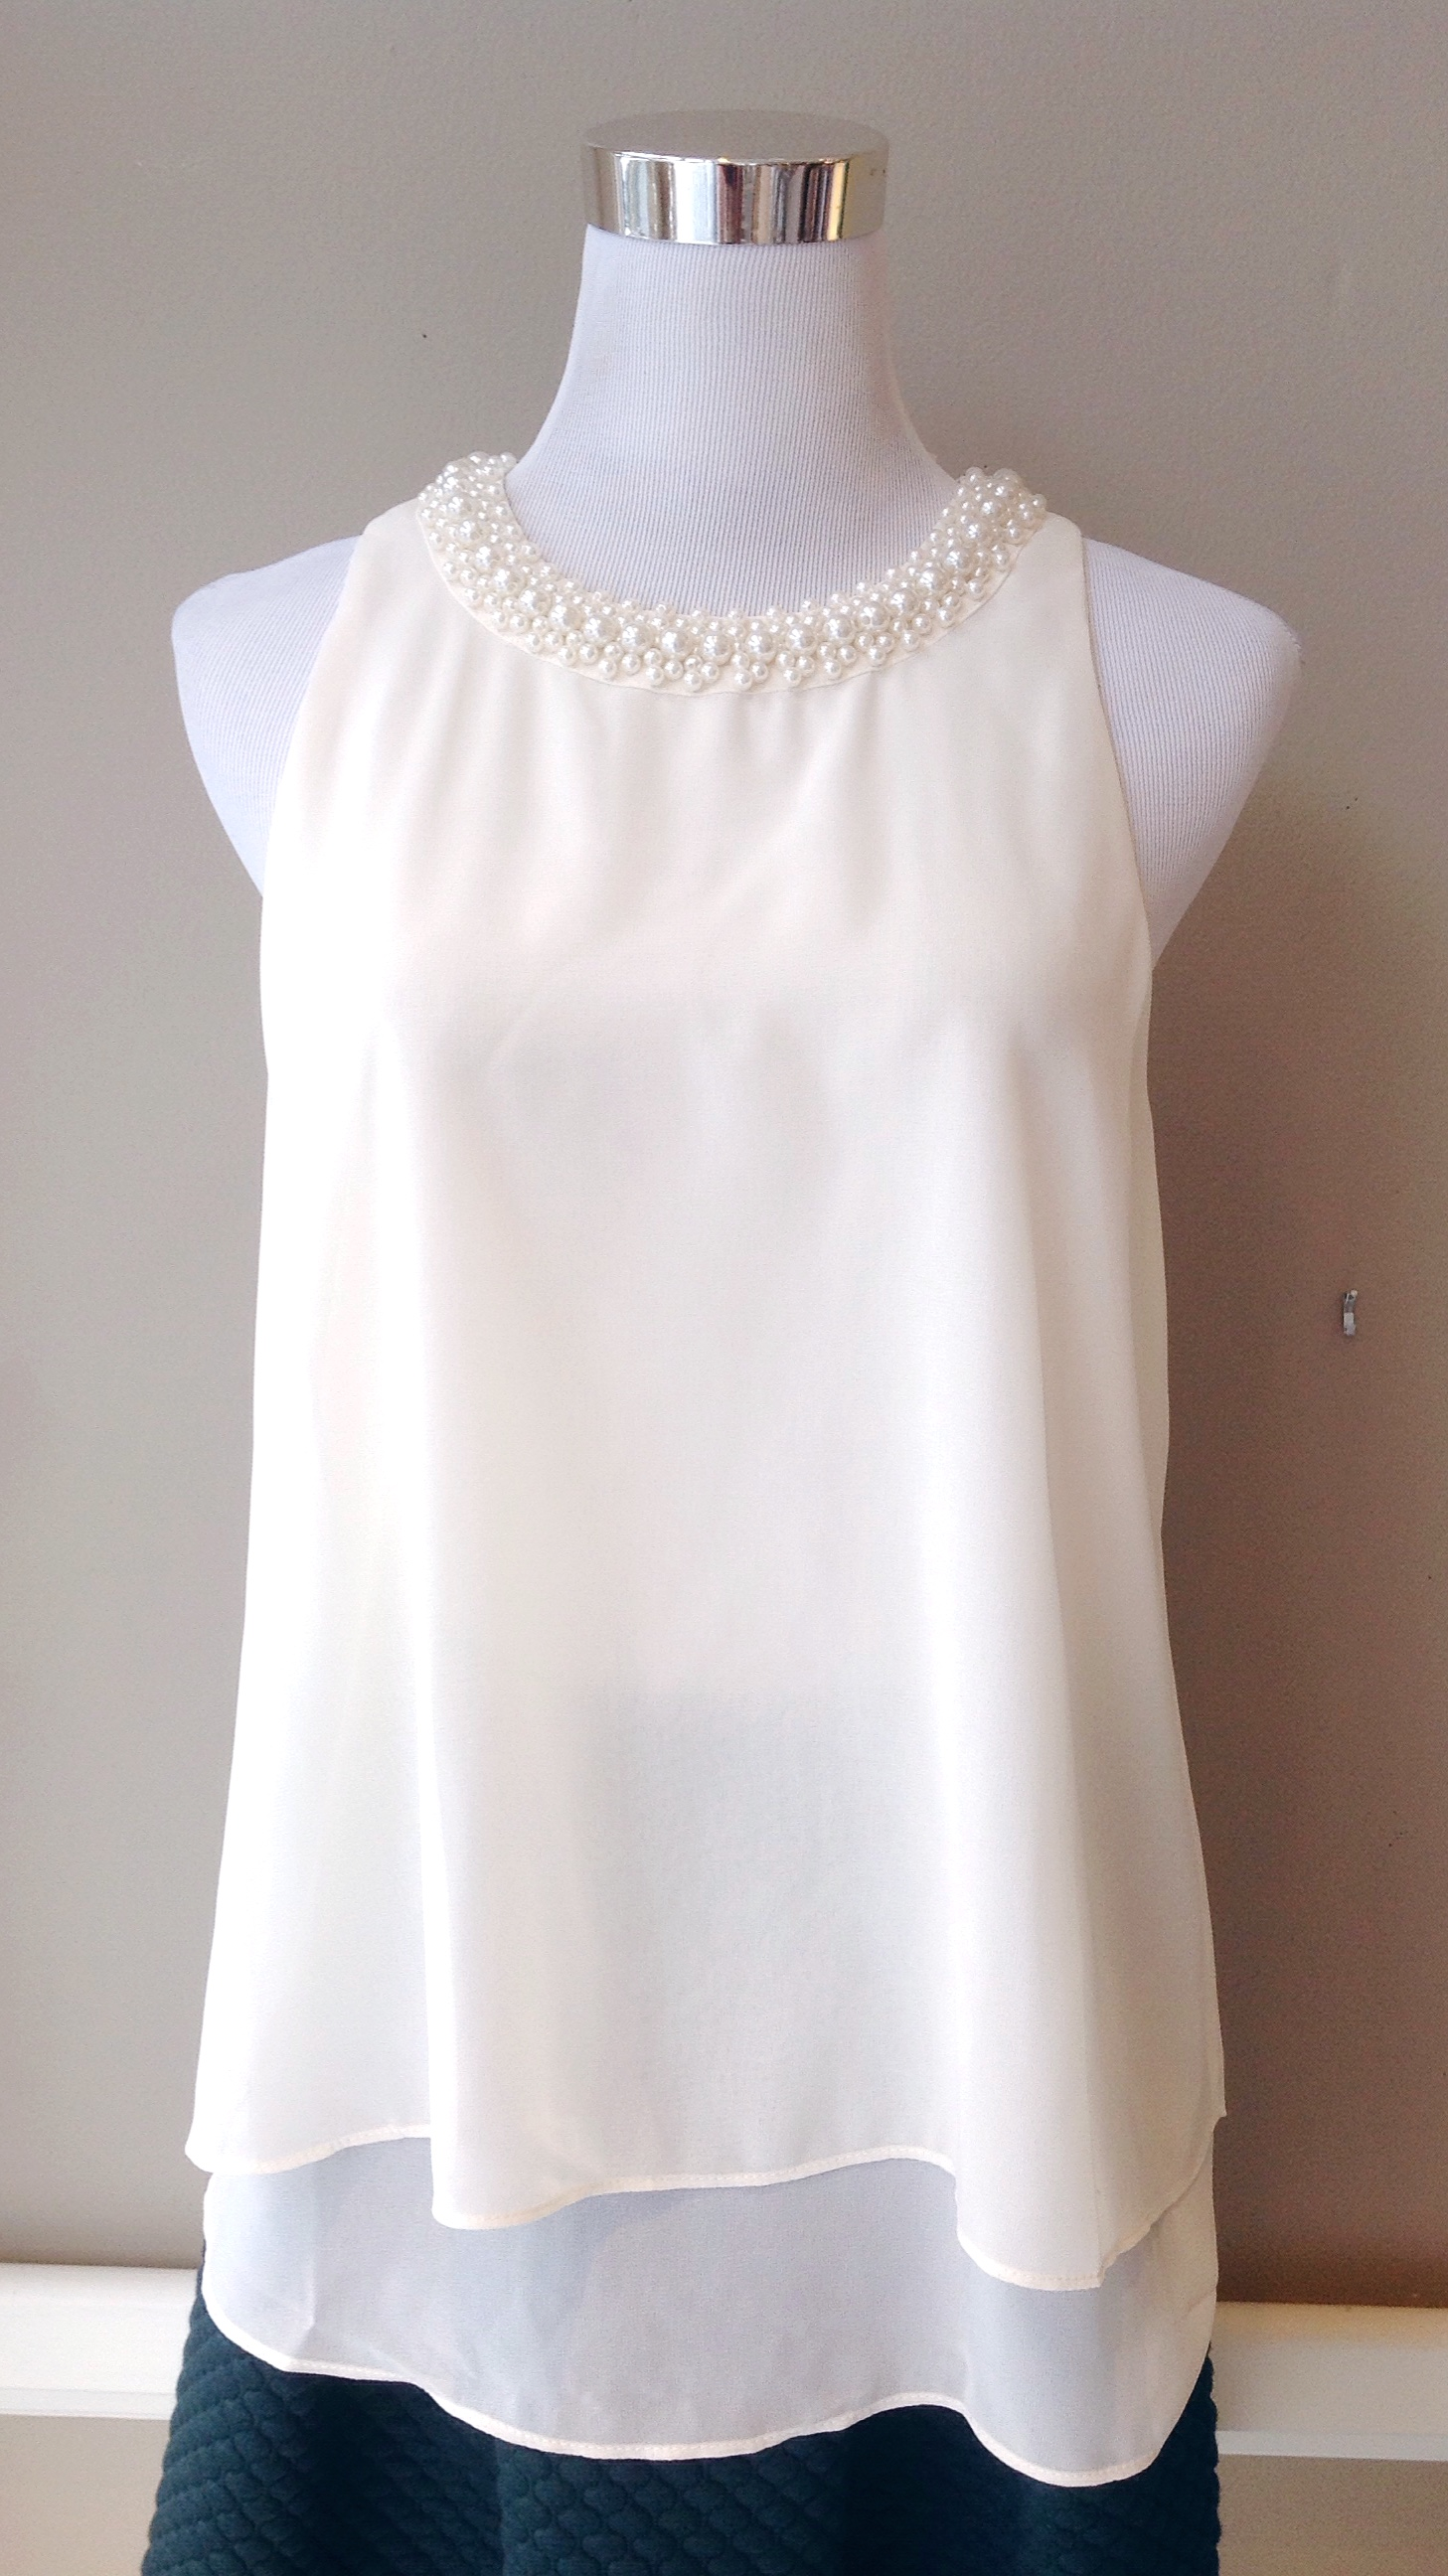 Layered poly chiffon tank with embellished collar and back pleat, $38